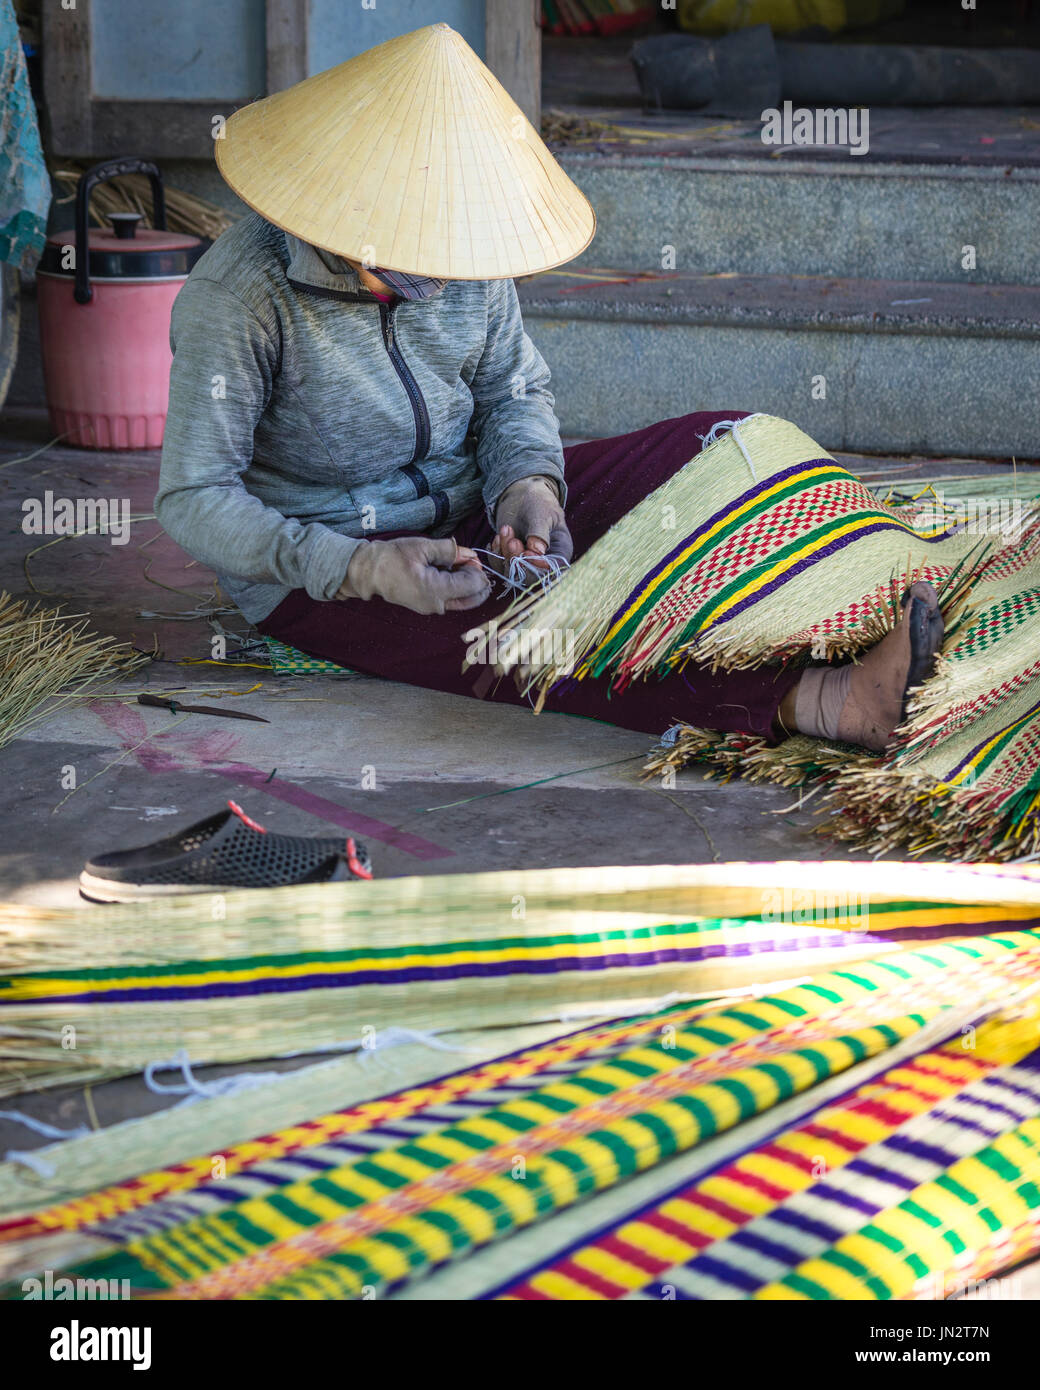 Vietnamese woman in conical hat weaving traditional reed mat - Stock Image